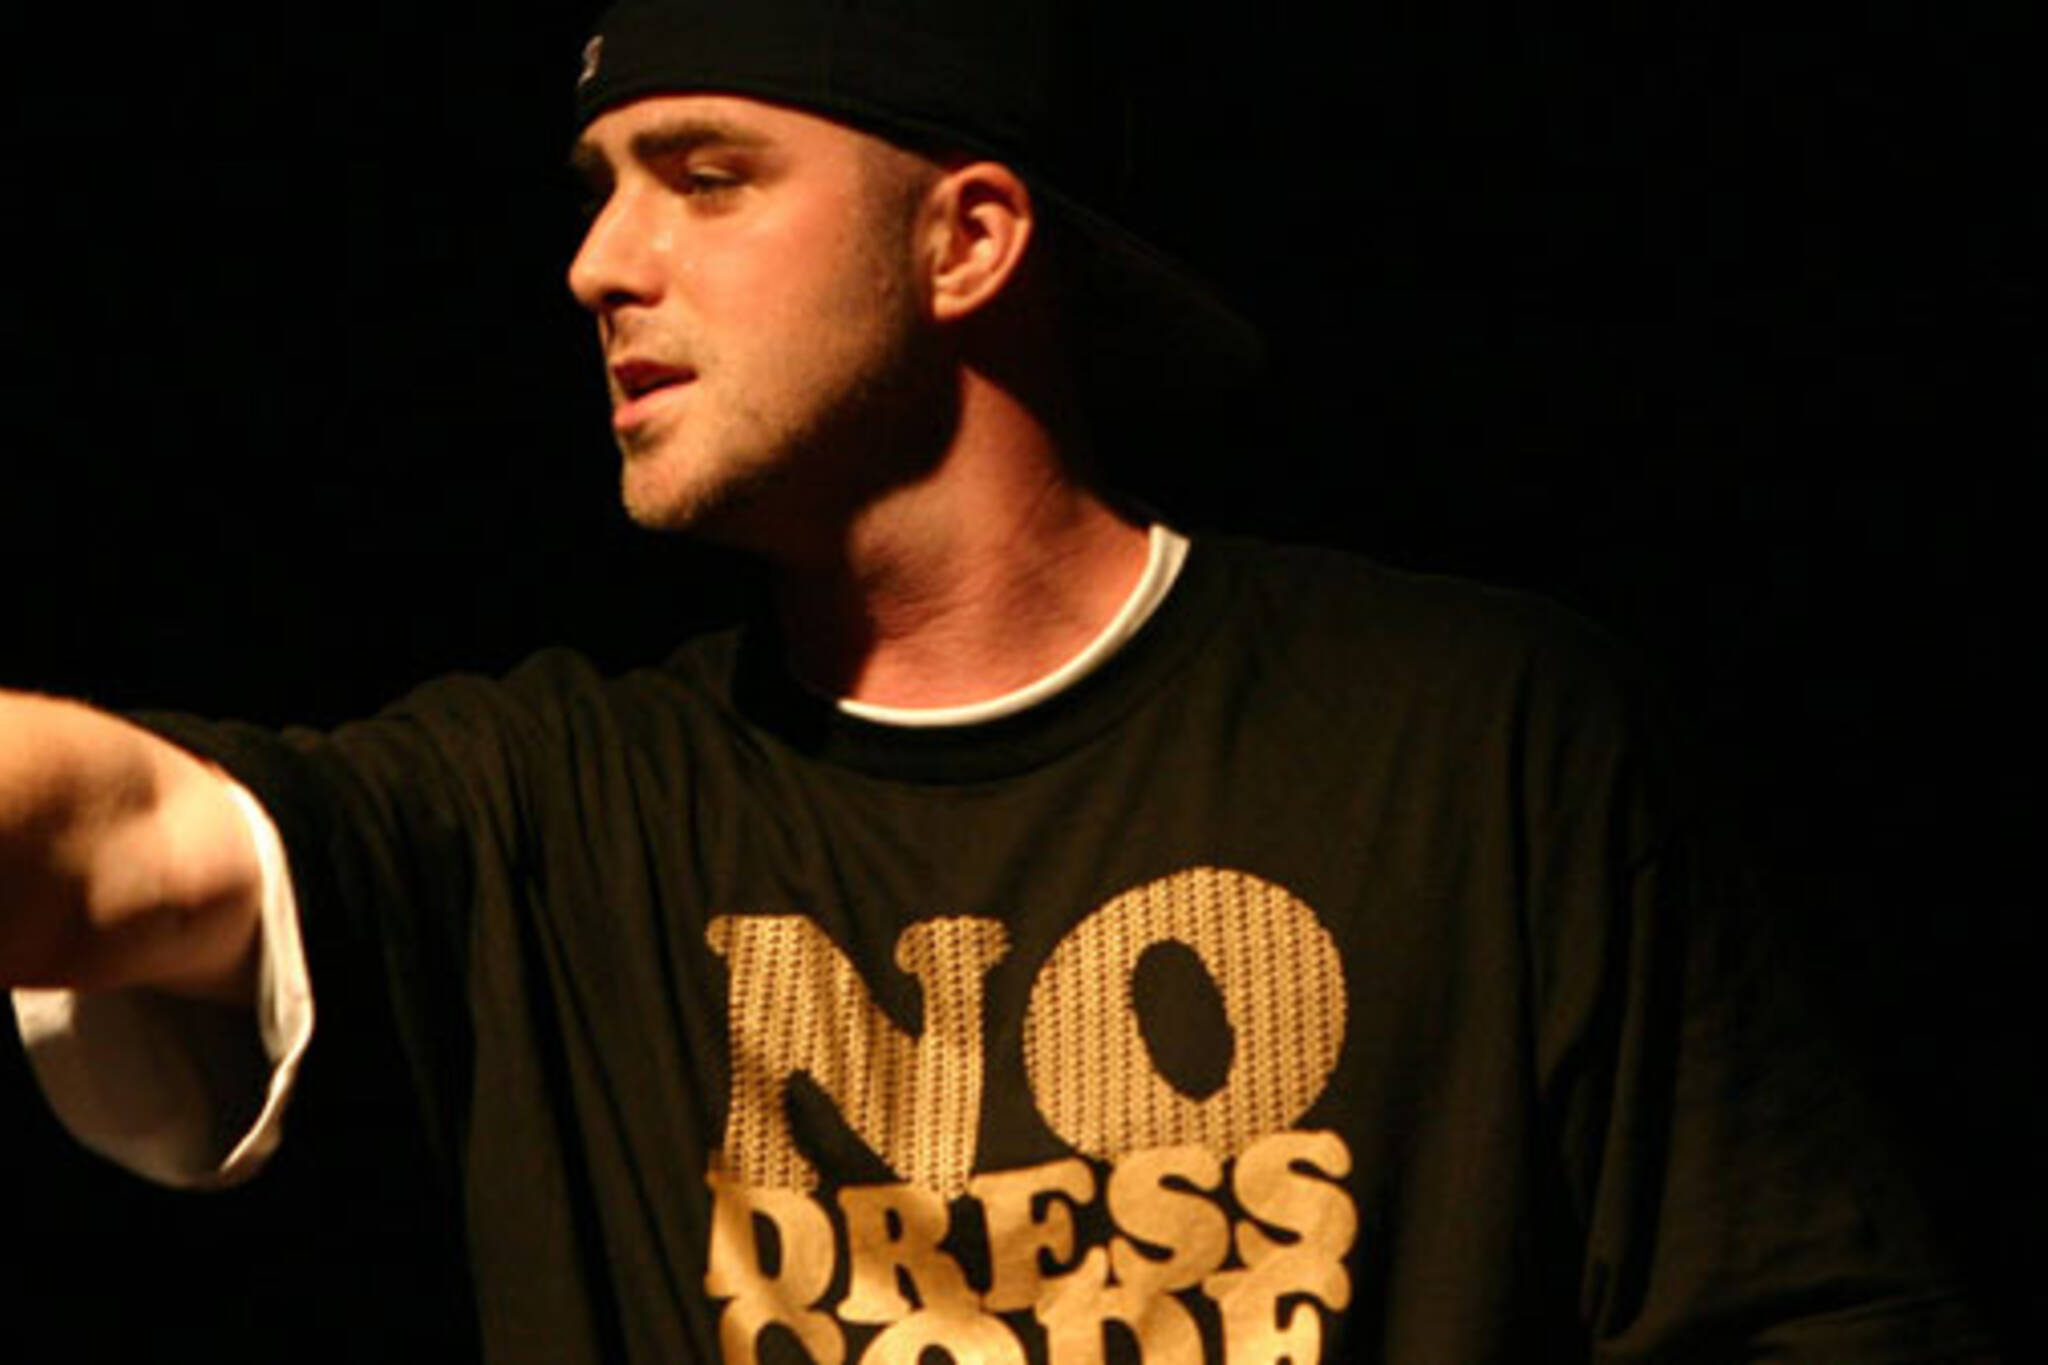 20071107_classified.jpg